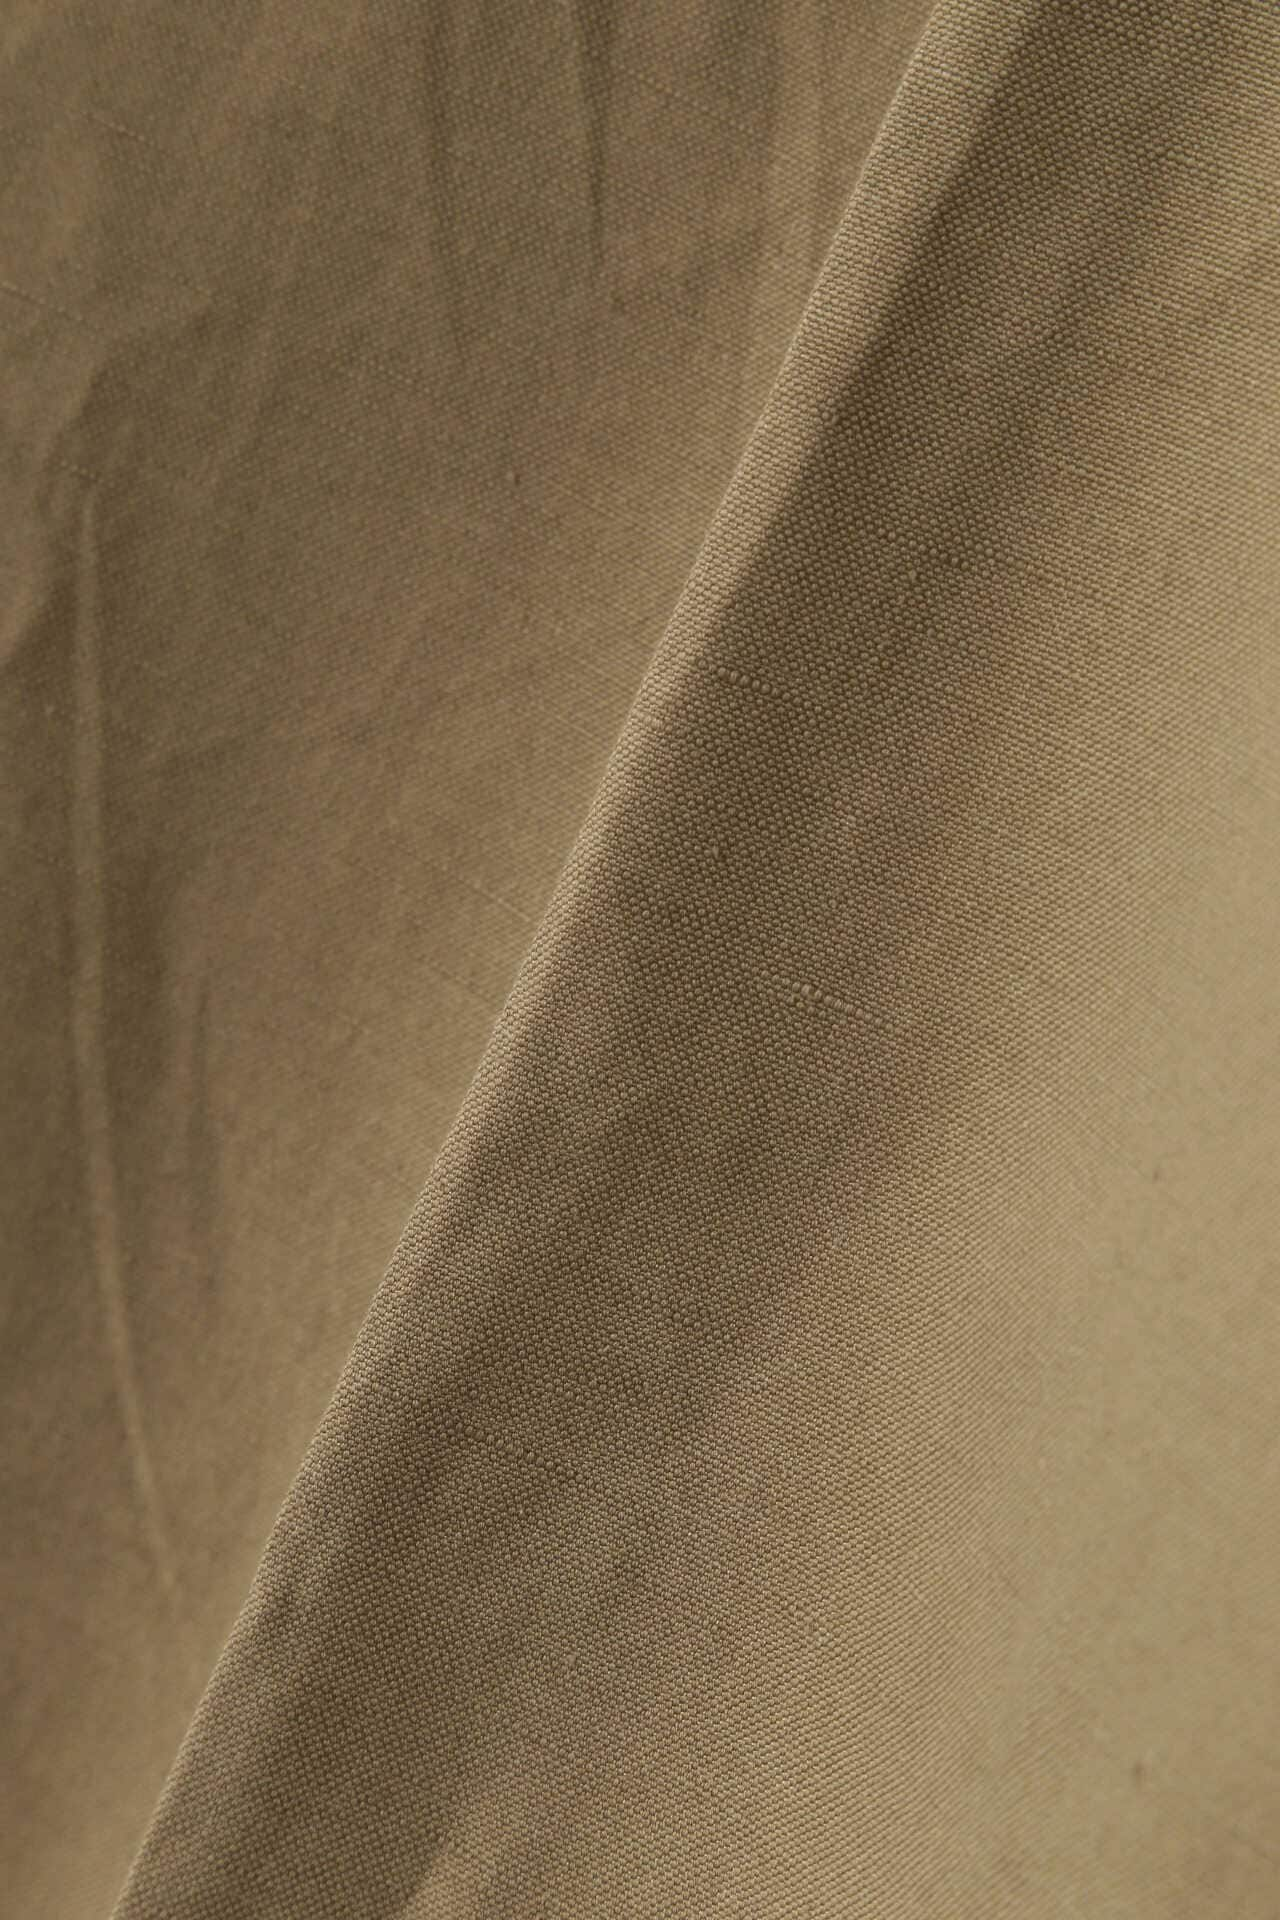 COTTON LINEN PLAIN WEAVE10